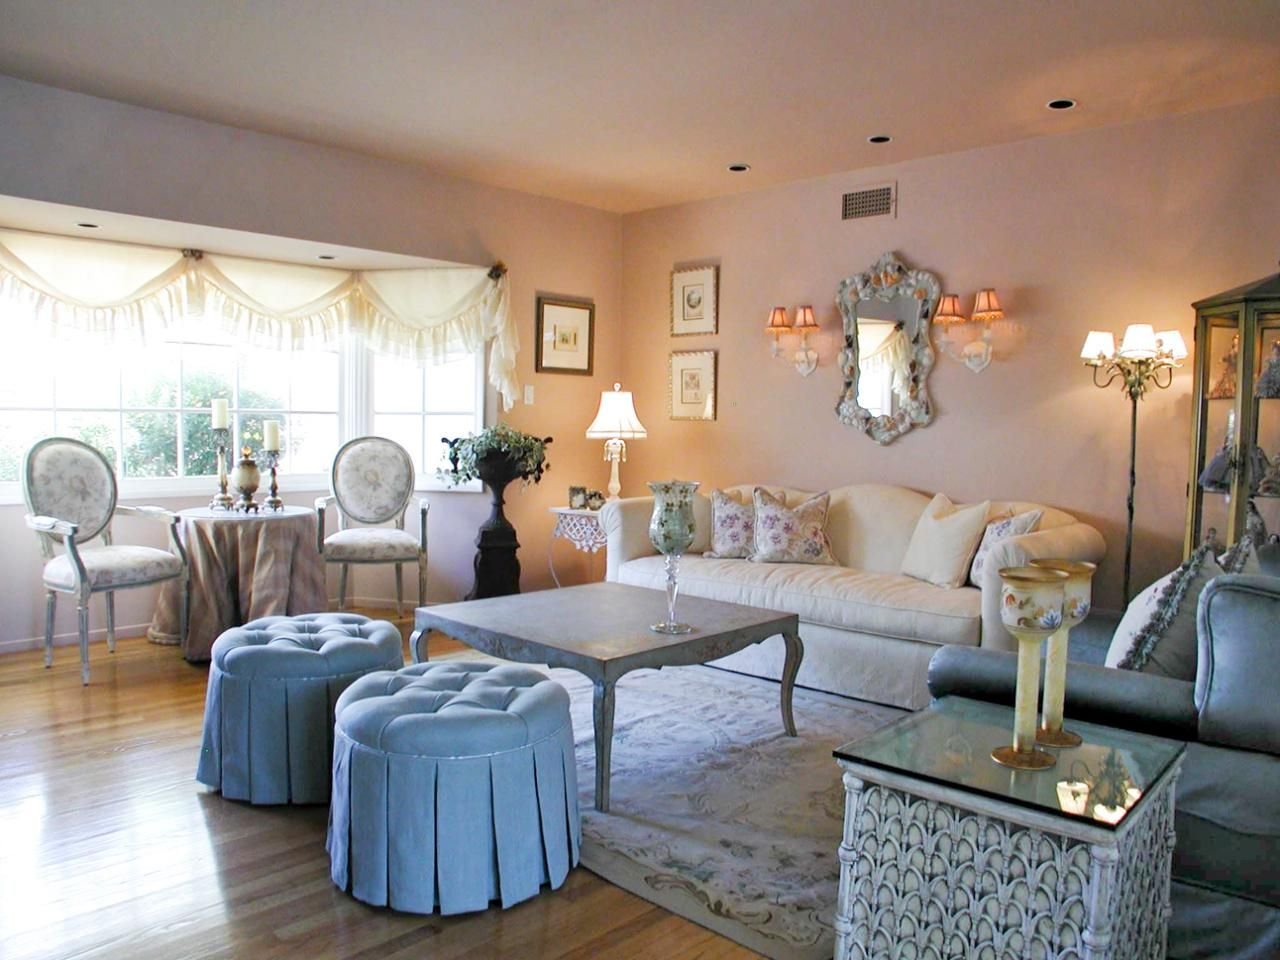 Learn to use a color wheel. HGTV.com shows you different types of color scheme possibilities and color applications for bedrooms, bathrooms and more.